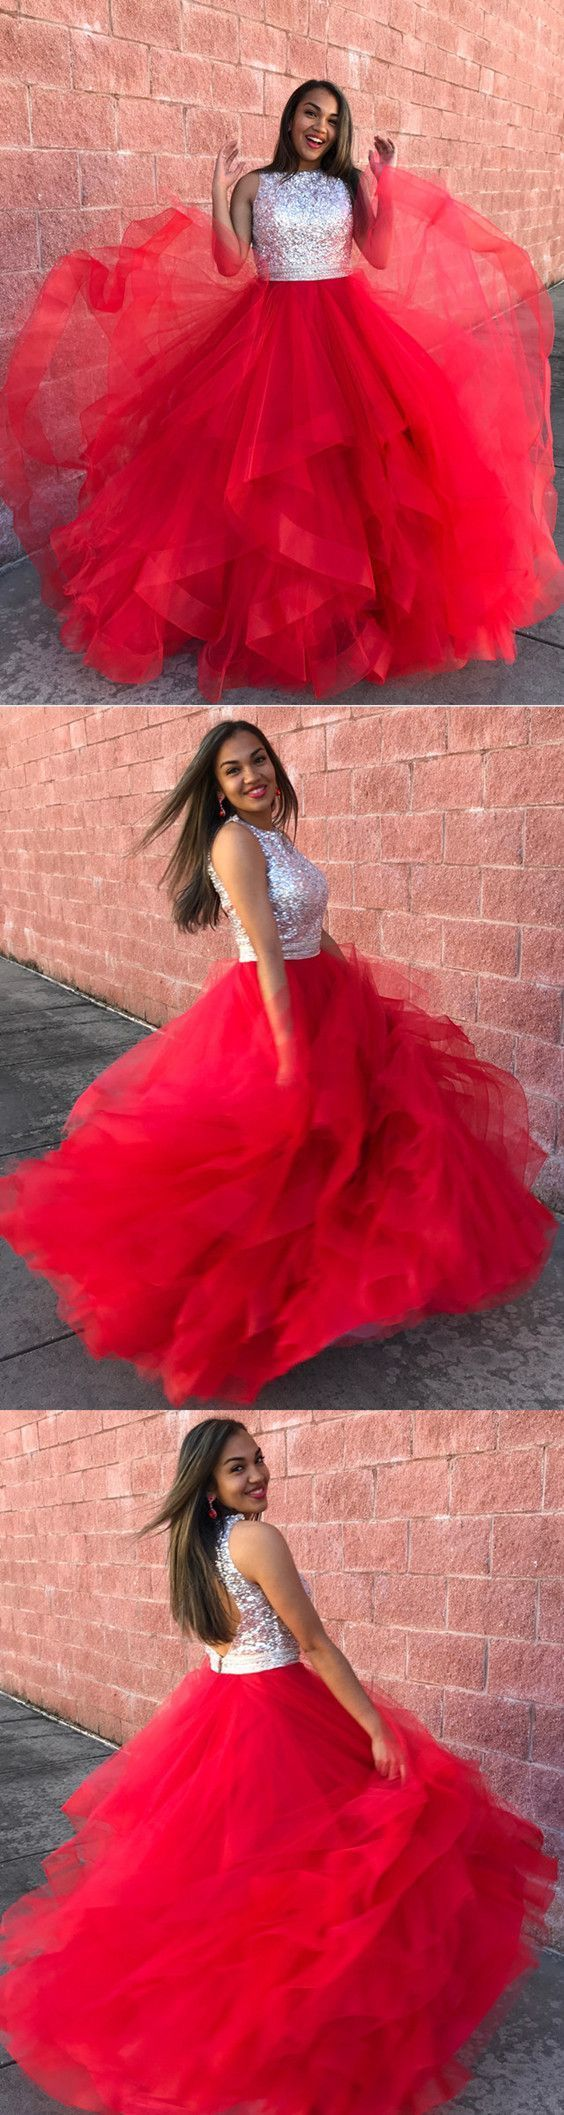 Red Prom Dresses Ball Gowns Organza Ruffle With Sequin Beaded And Keyhole Back